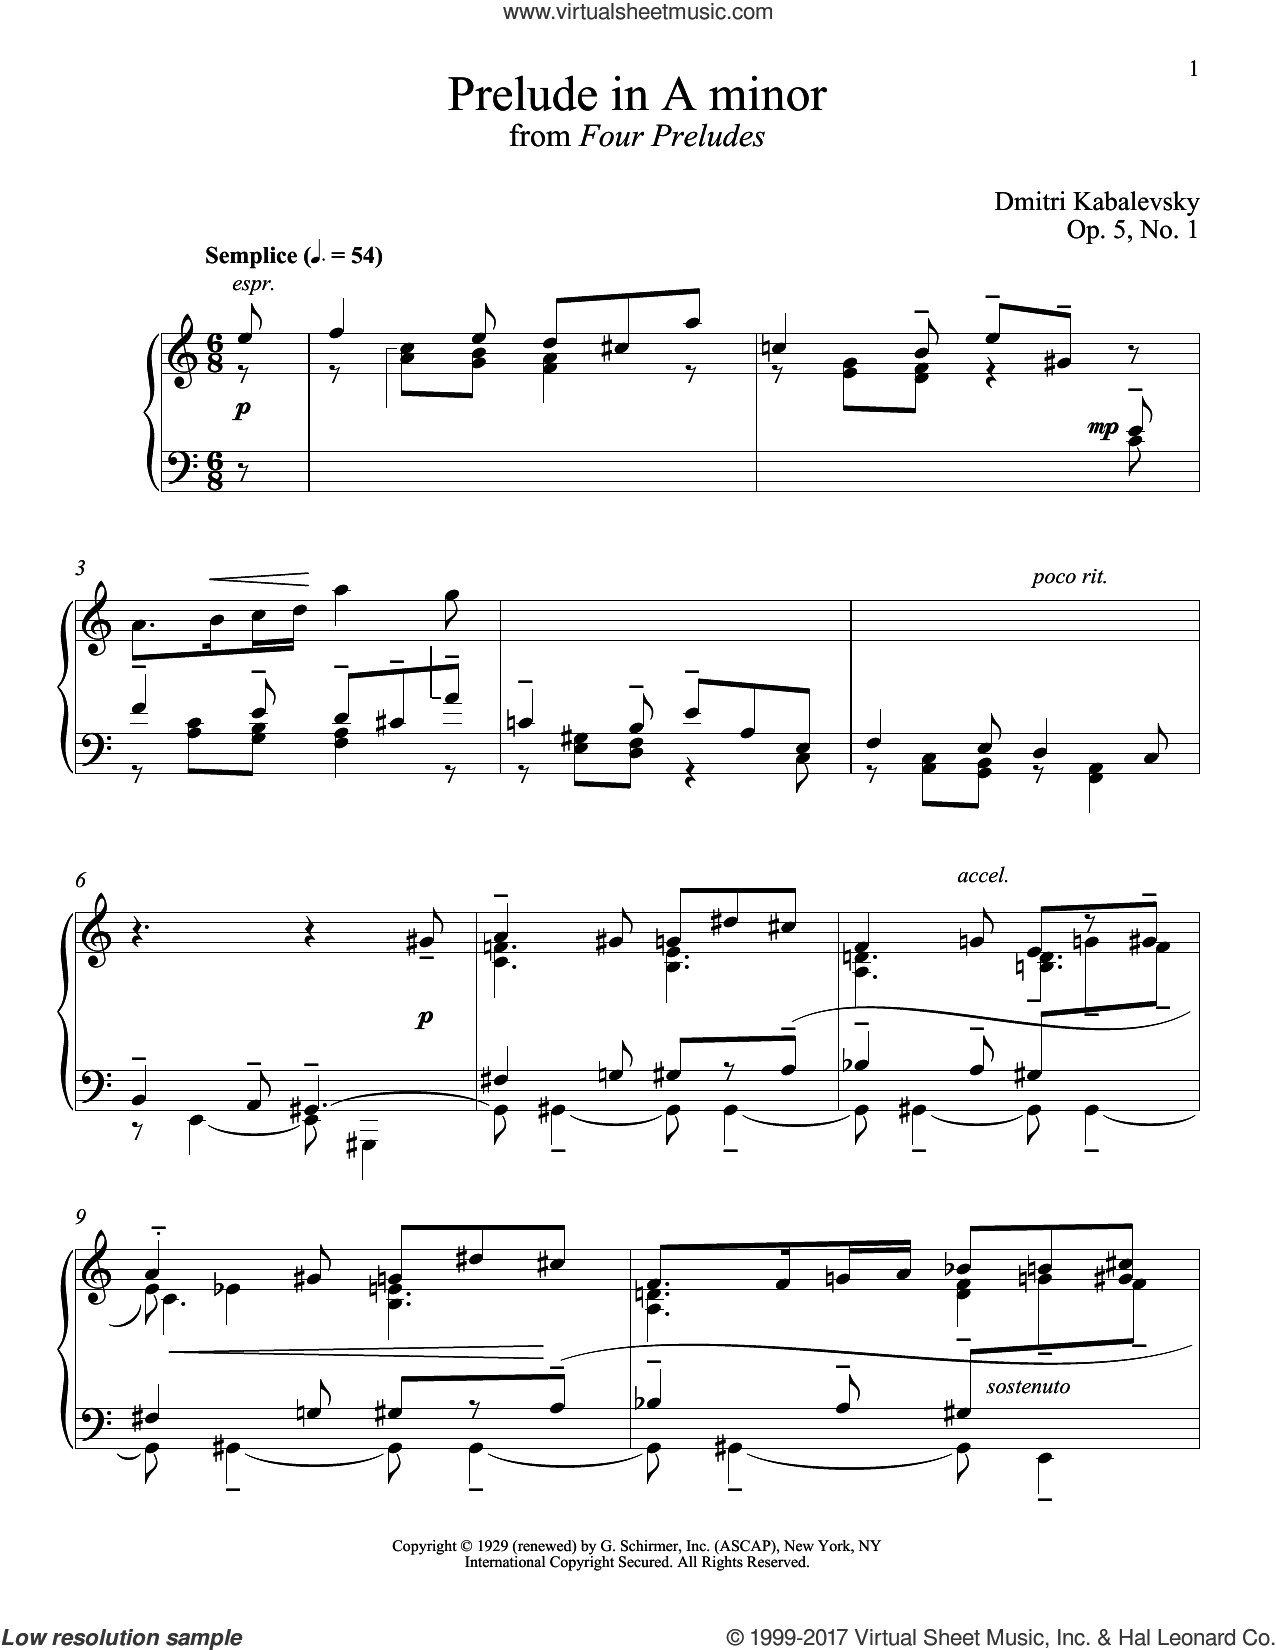 Prelude In A Minor, Op. 5, No. 1 sheet music for piano solo by Dmitri Kabalevsky, classical score, intermediate skill level